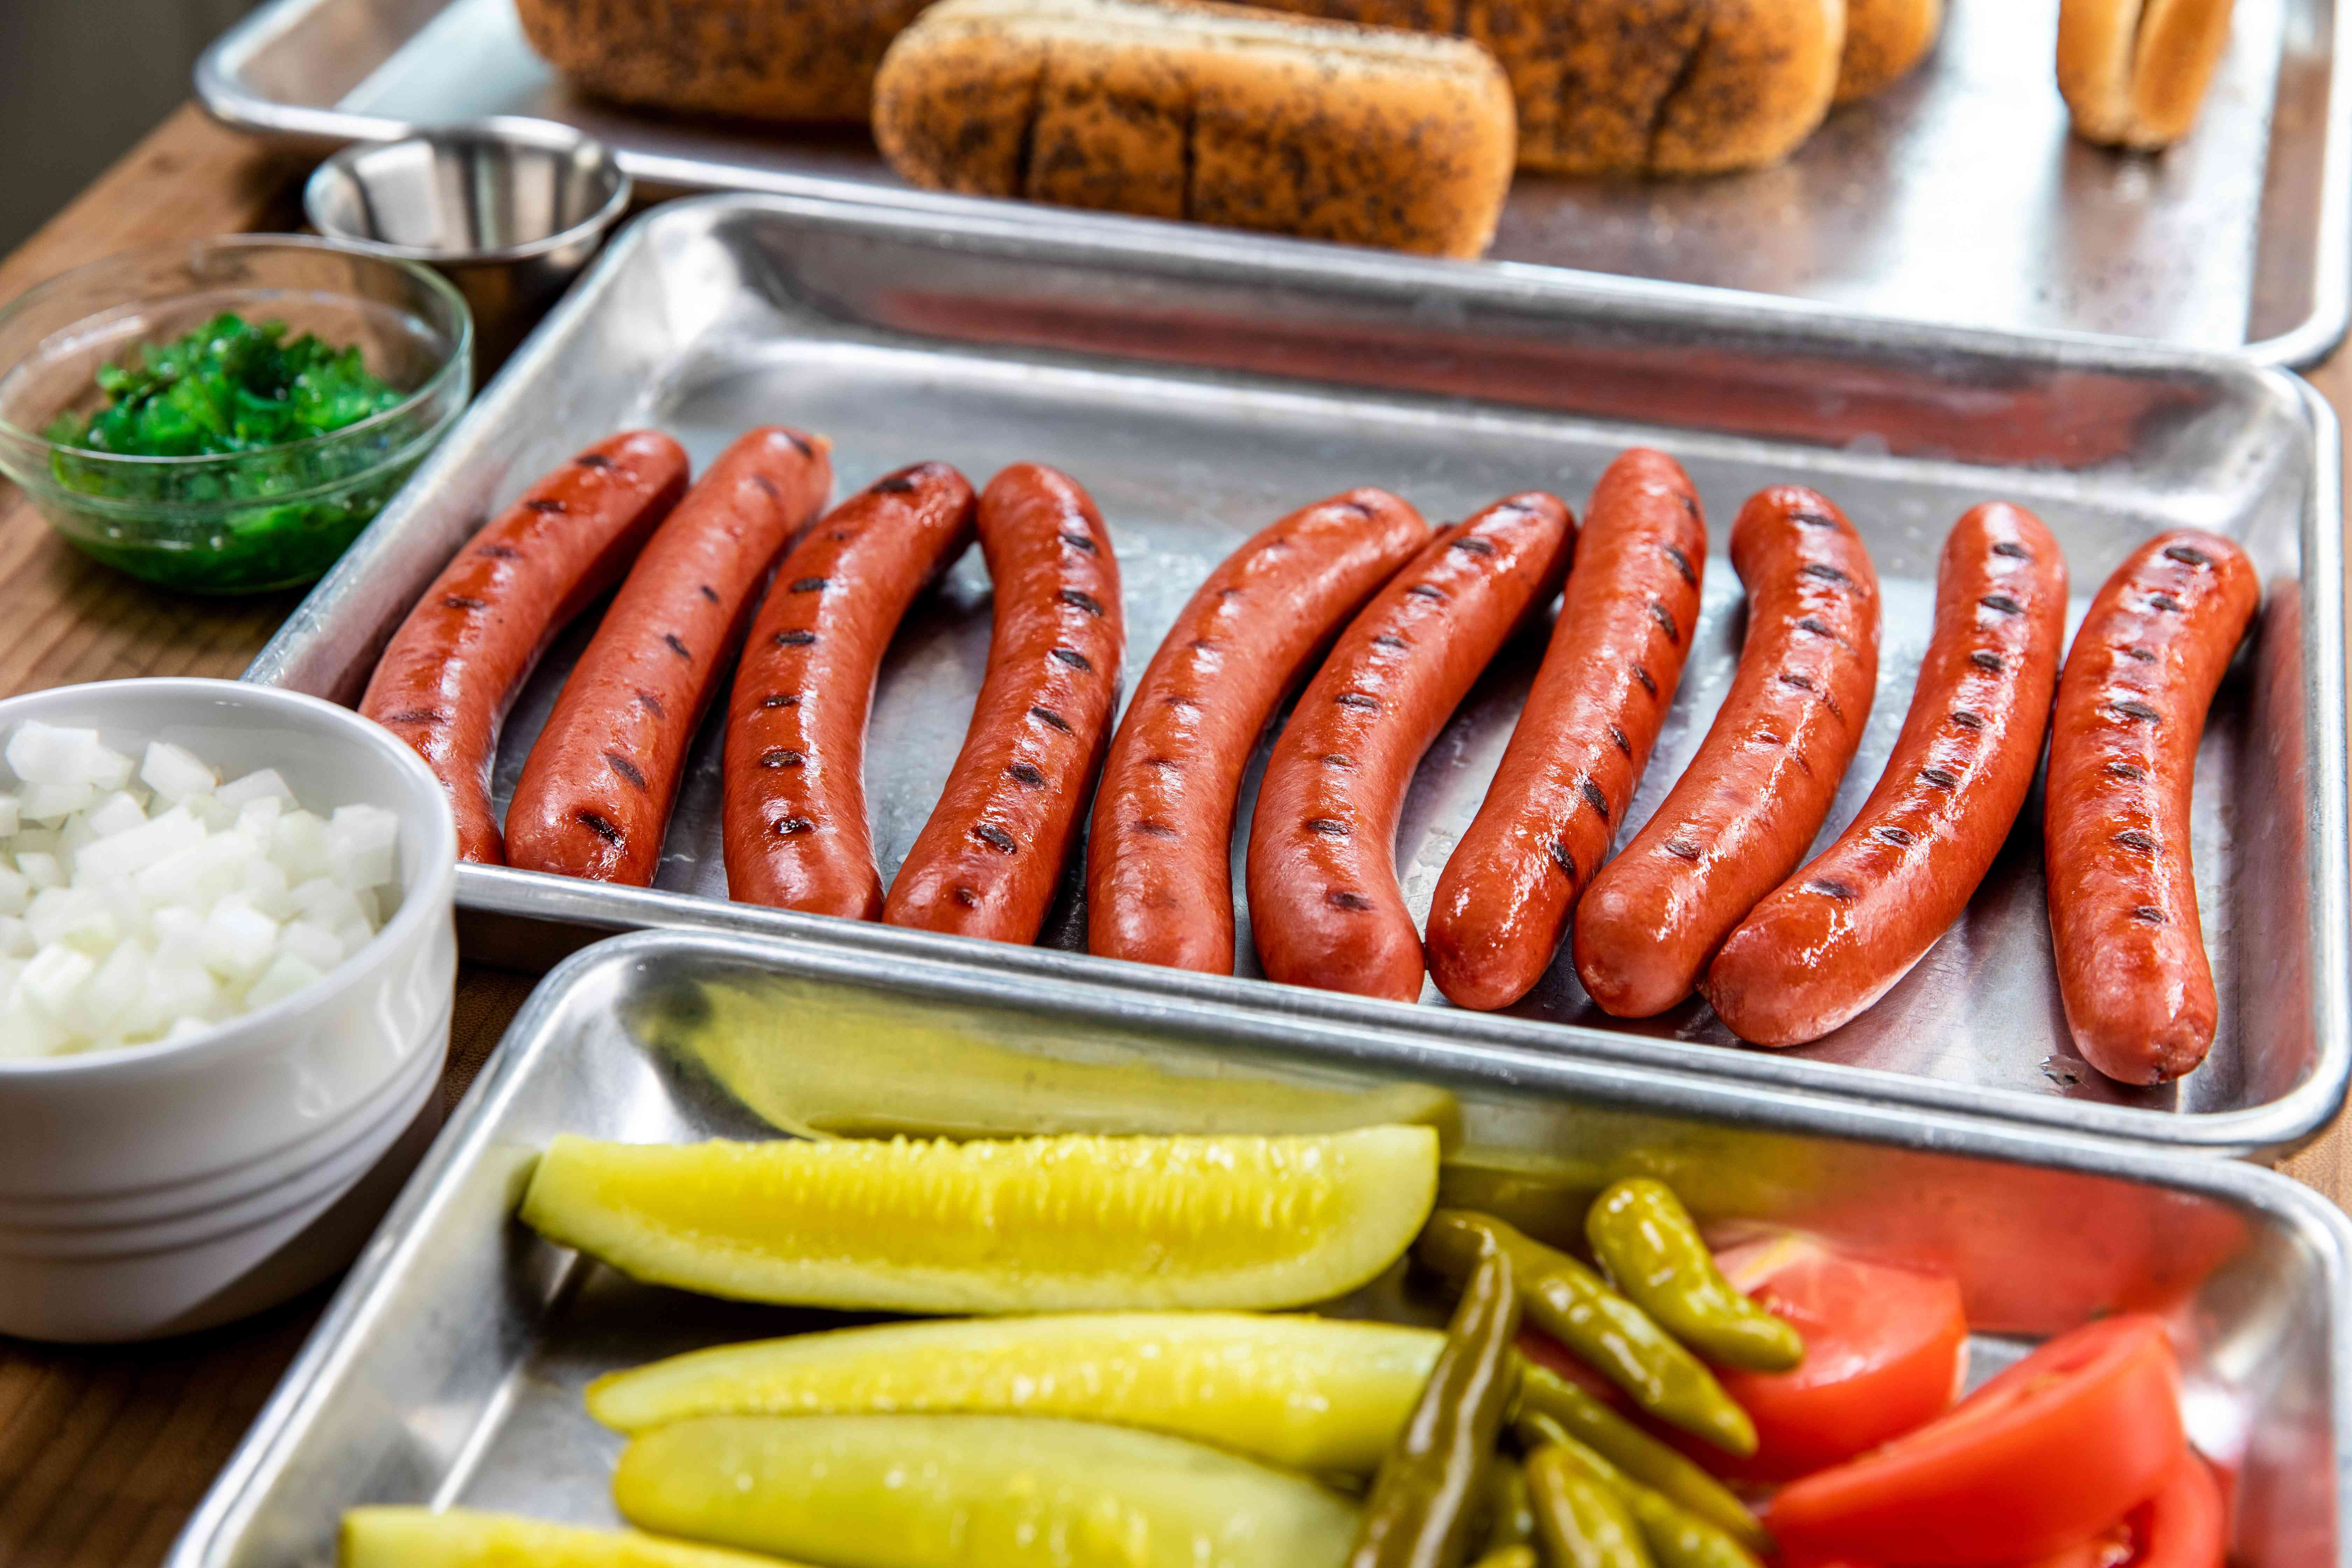 All-beef hot dog with toppings prepped on sheet pans.